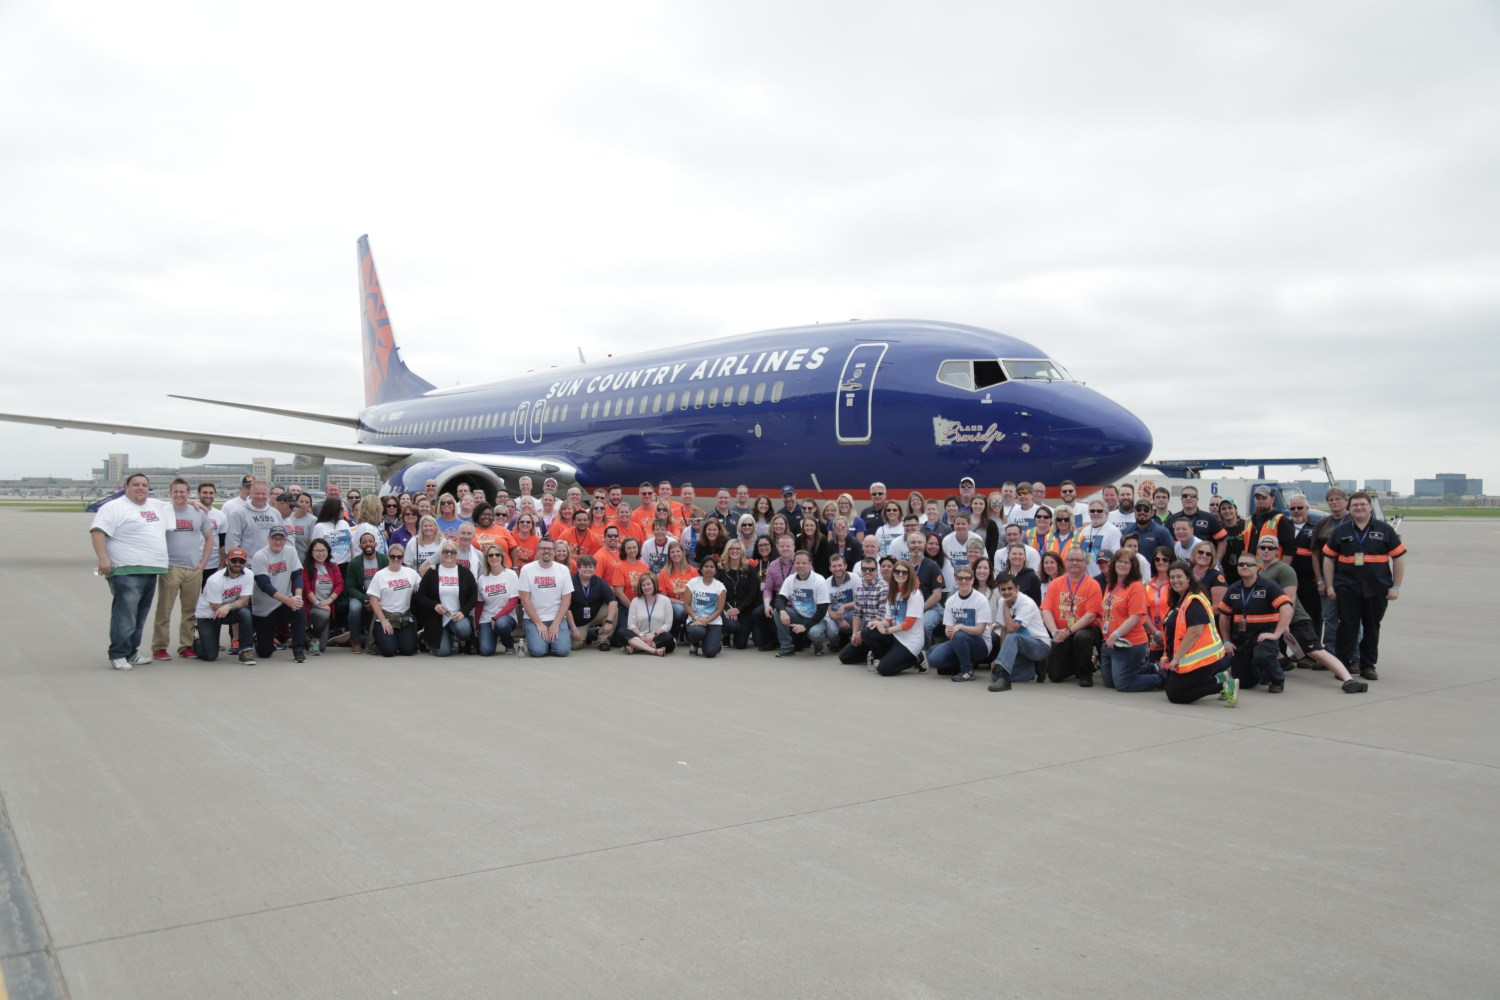 Sun Country Airlines Airplane Pull Benefits American Cancer Society®